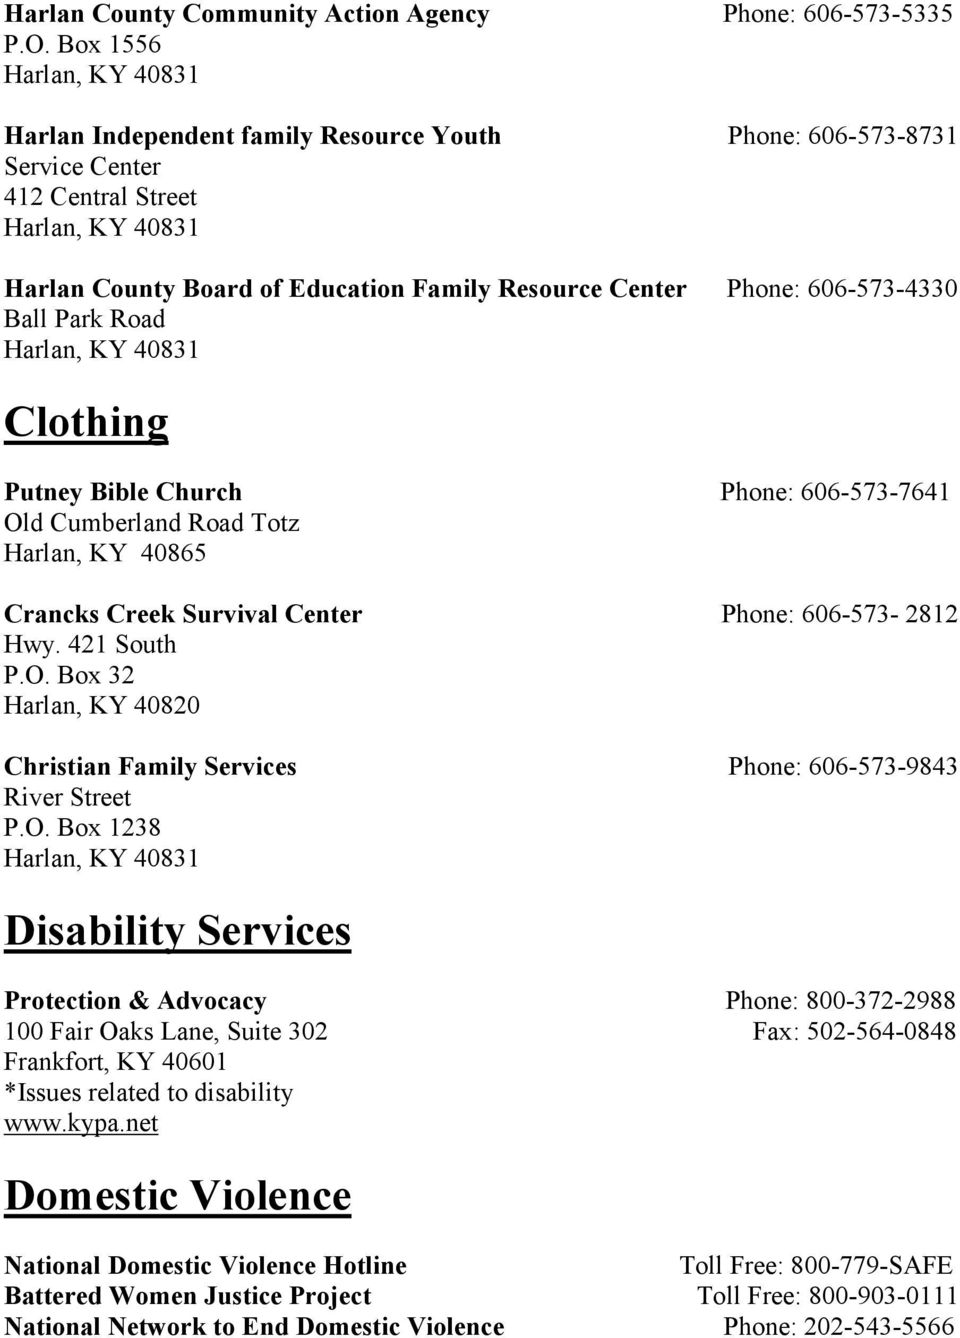 Clothing Putney Bible Church Phone: 606-573-7641 Old Cumberland Road Totz Harlan, KY 40865 Crancks Creek Survival Center Phone: 606-573- 2812 Hwy. 421 South P.O. Box 32 Harlan, KY 40820 Christian Family Services Phone: 606-573-9843 River Street P.